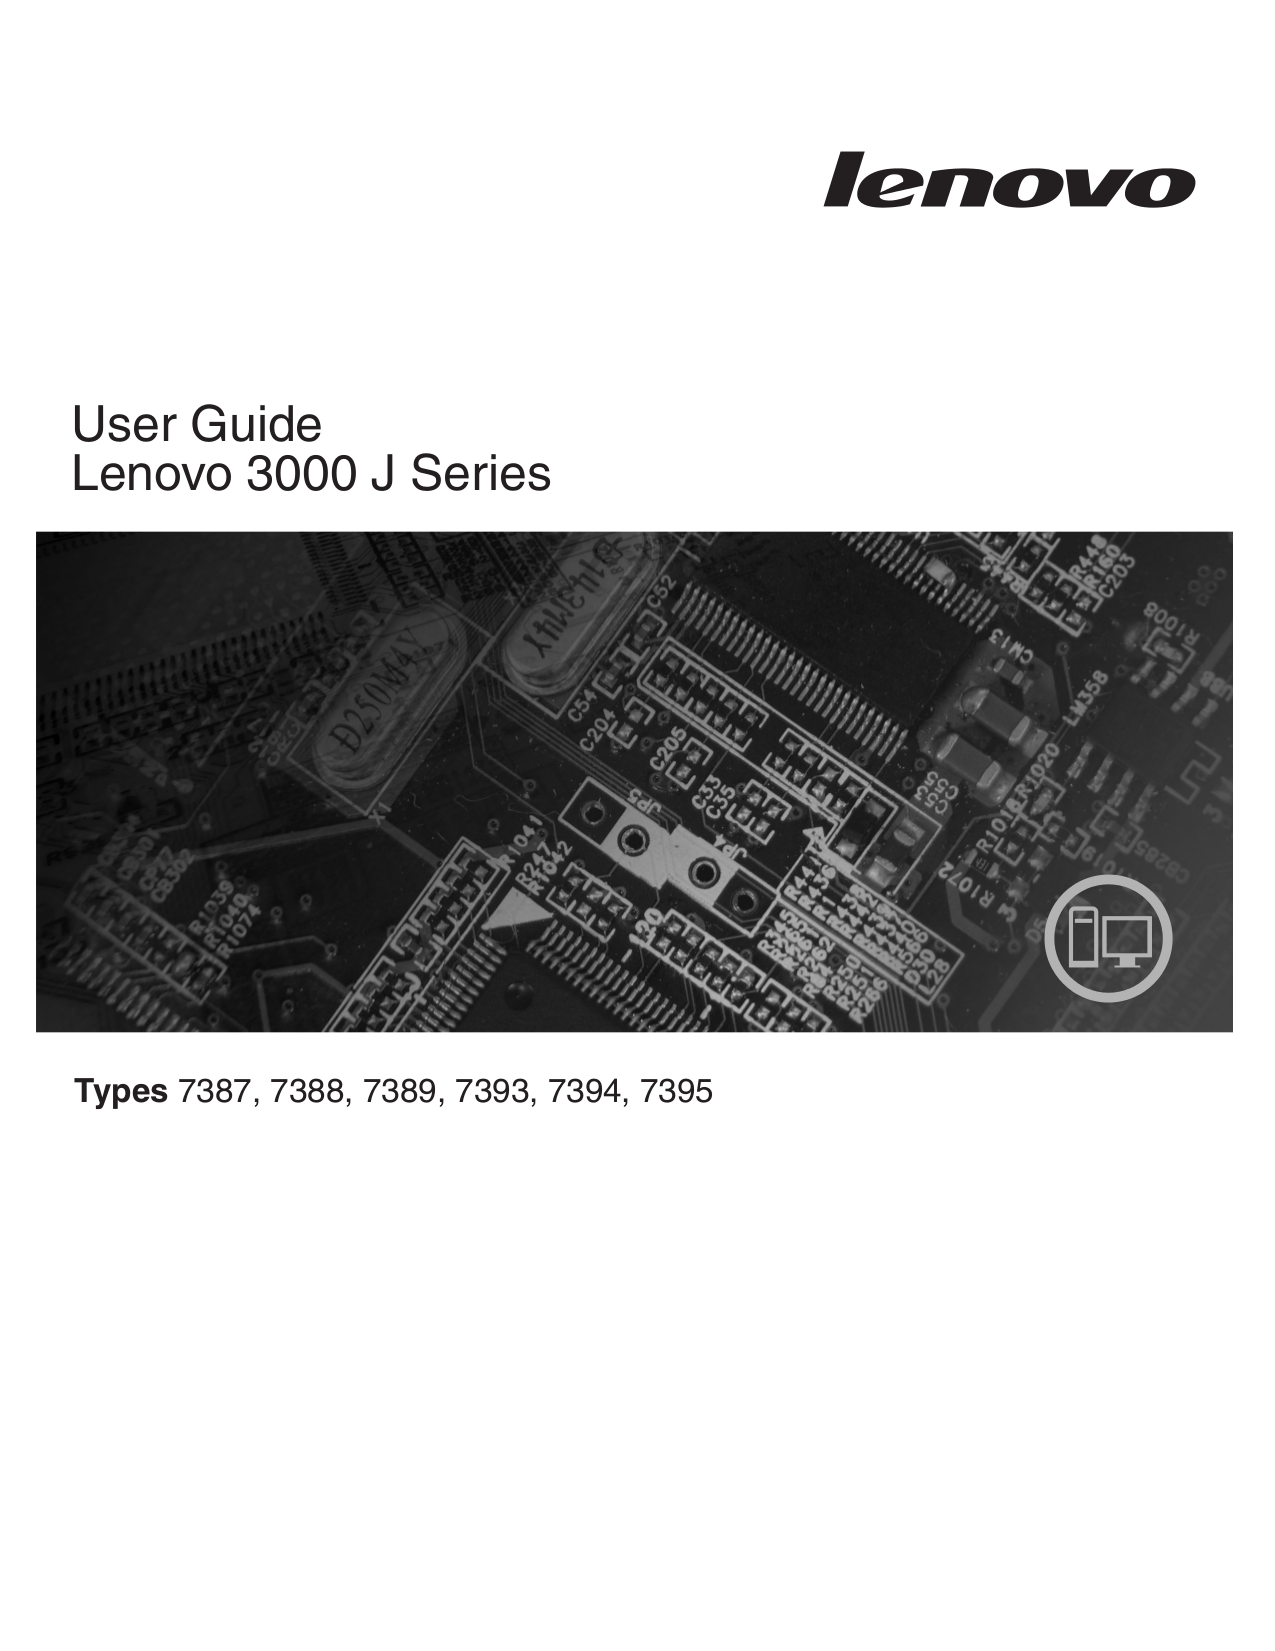 pdf for Lenovo Desktop 3000 J110 7395 manual